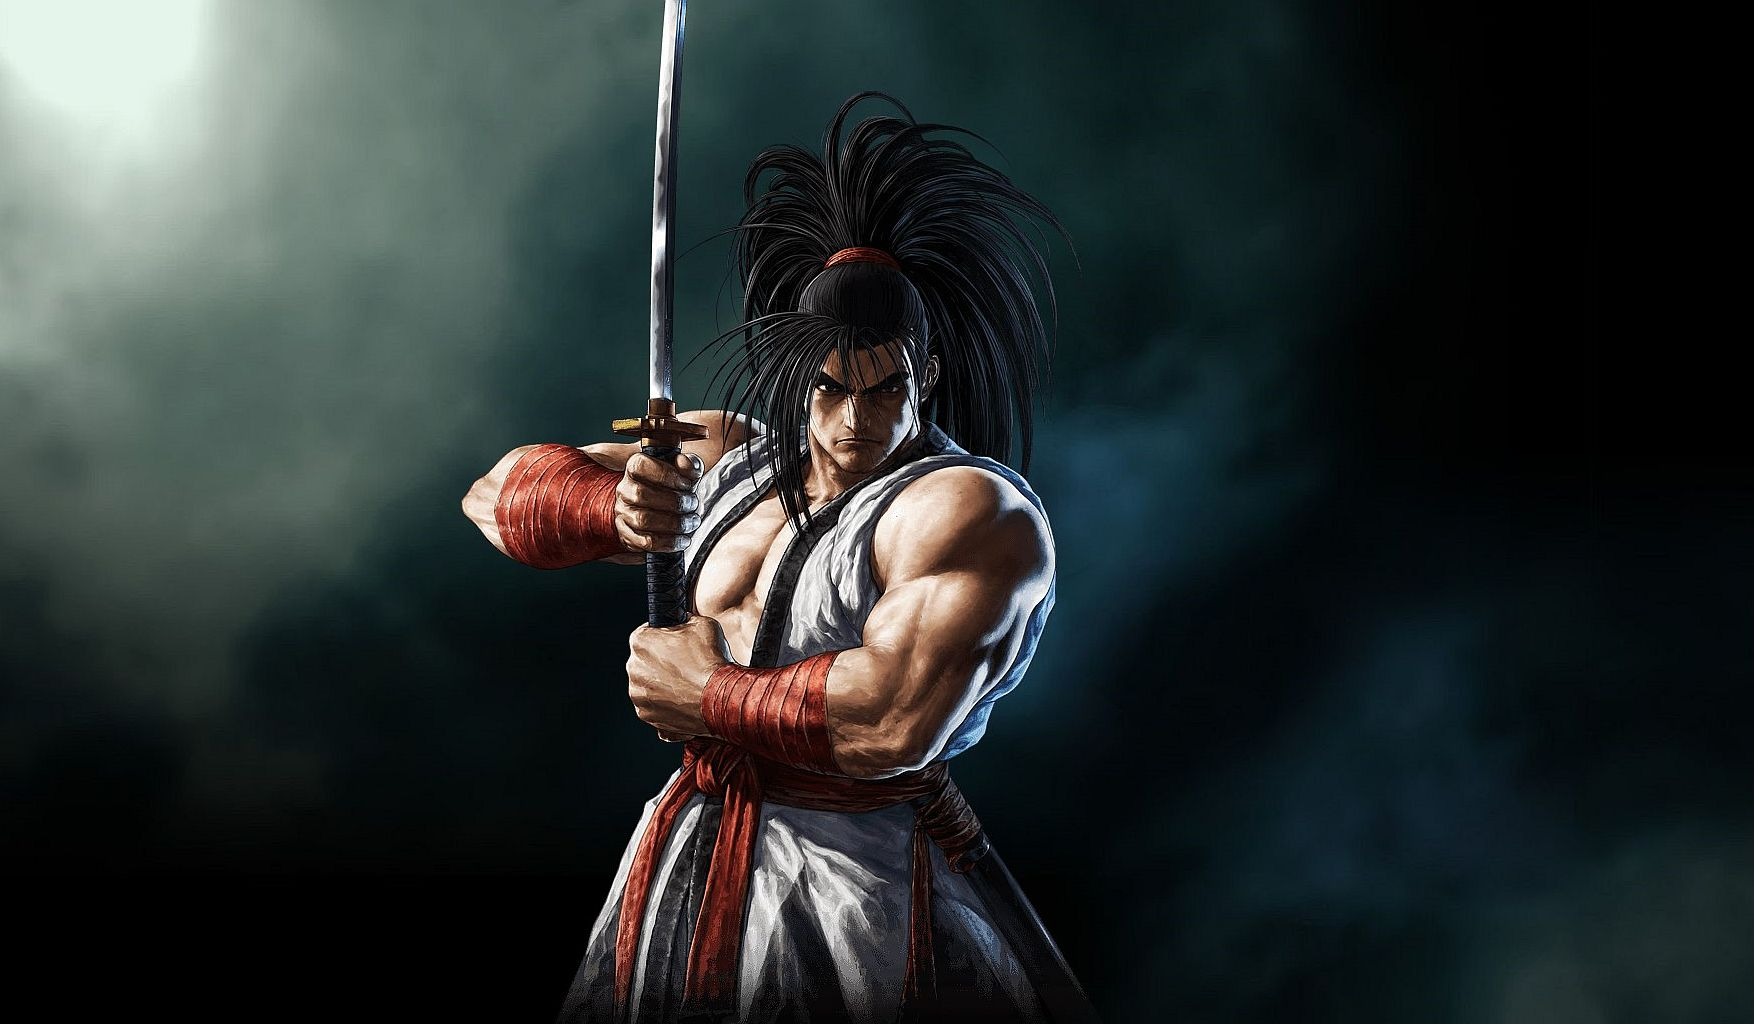 Samurai Shodown out this summer sometime before EVO 2019 kicks off